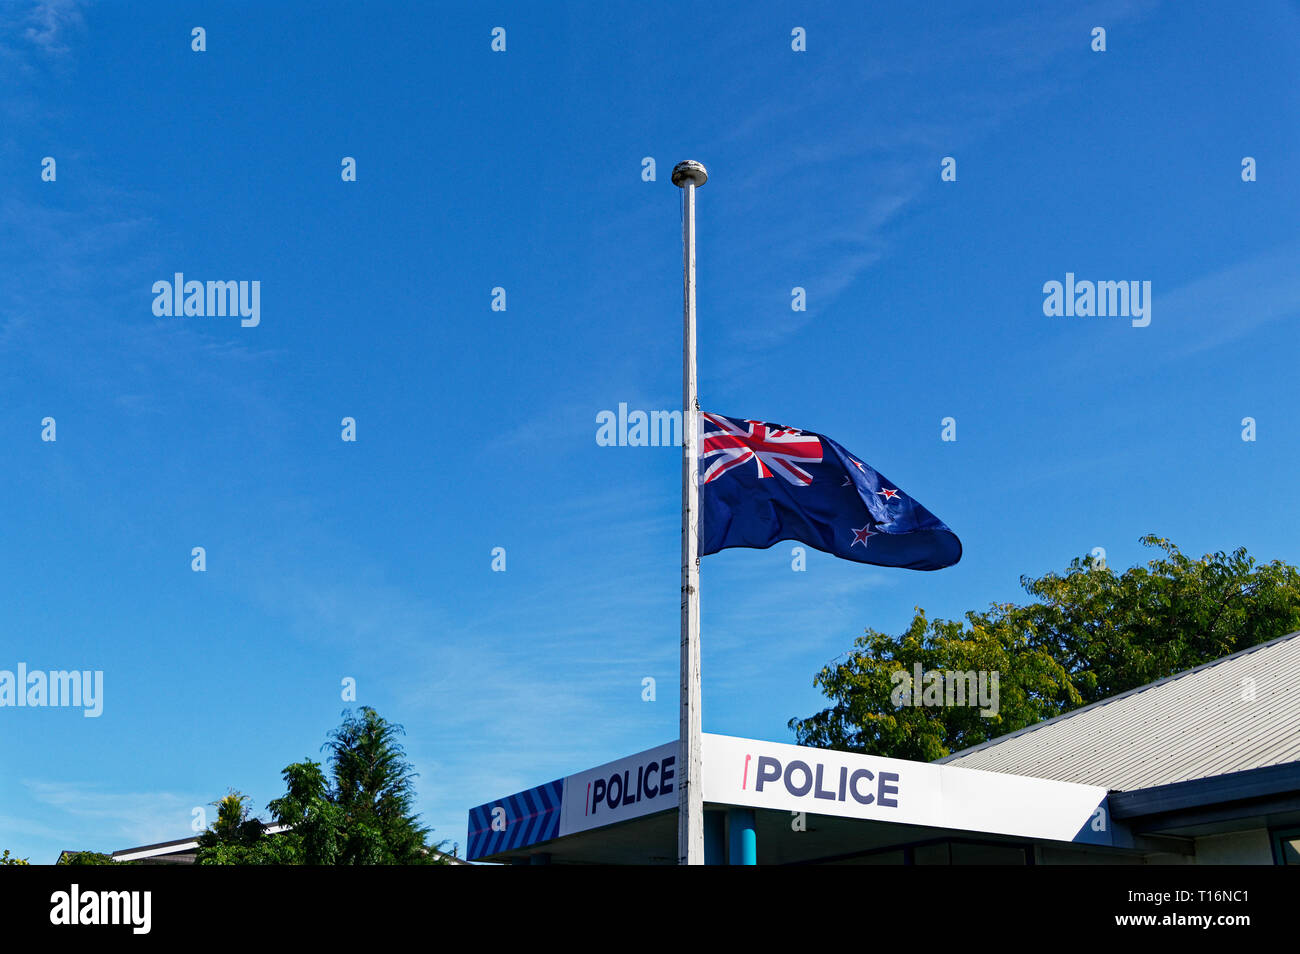 The New Zealand flag flying at half mast outside a police station following the shootings in Christchurch - Stock Image